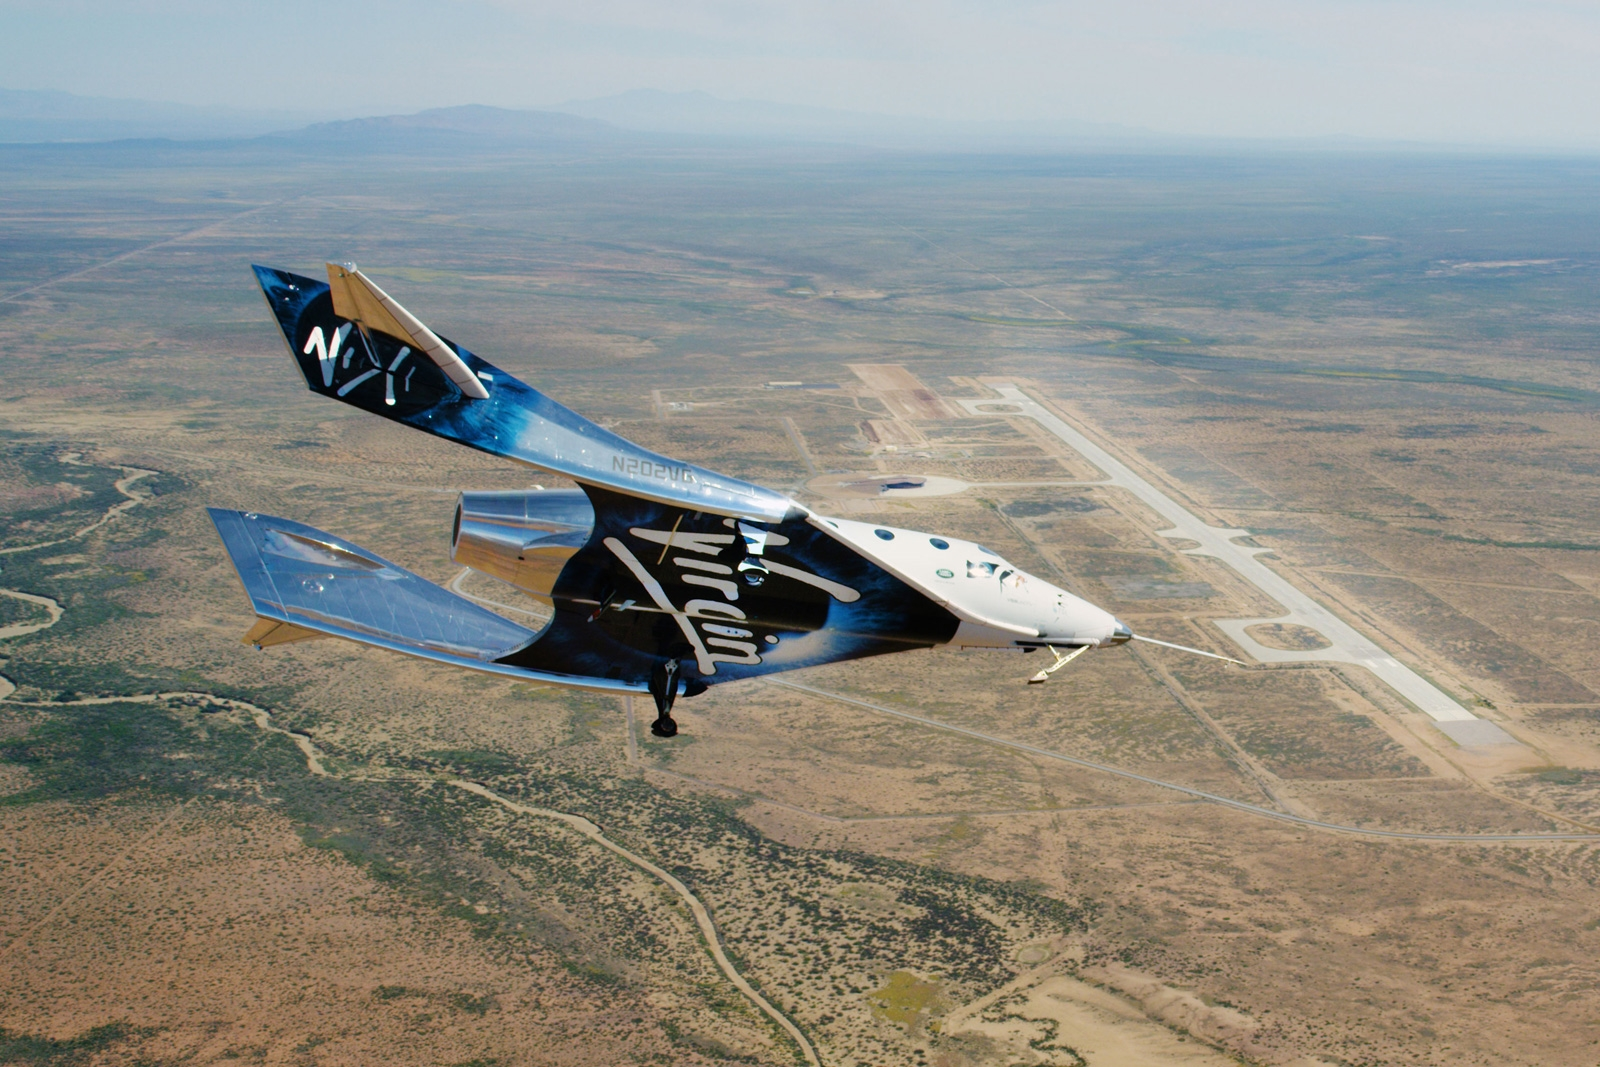 Virgin Galactic's spaceship flies from its new home base for the first time | DeviceDaily.com